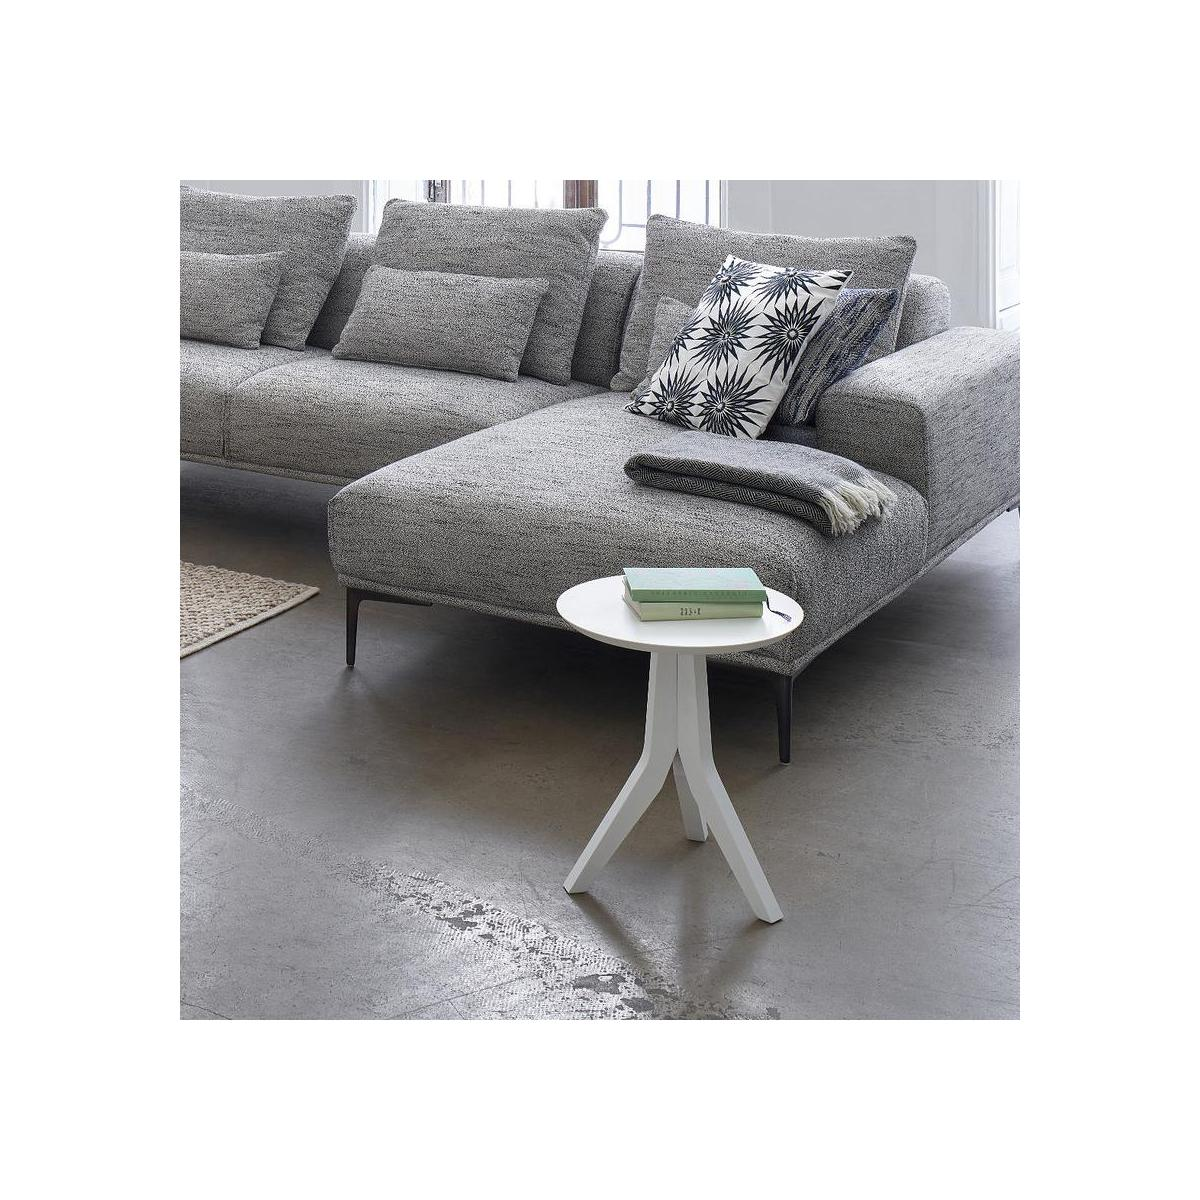 Table d'appoint en hêtre blanche n°5